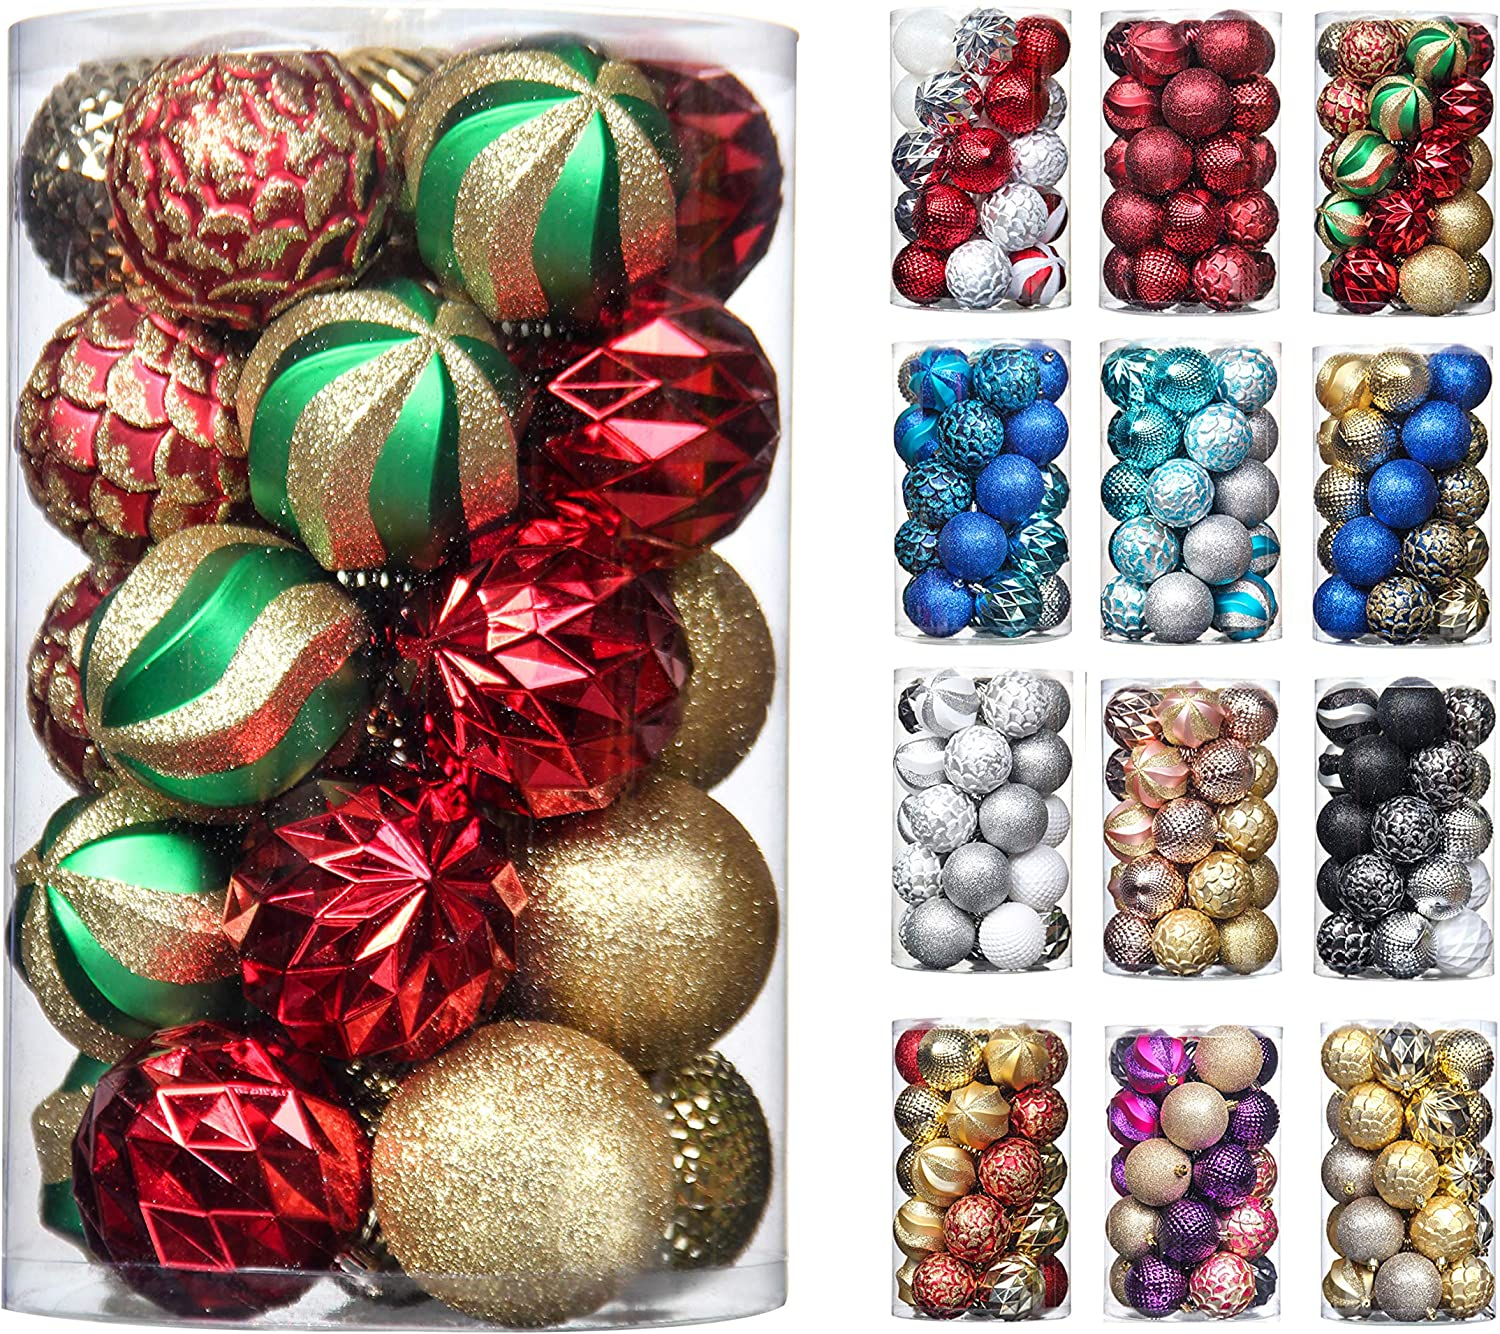 31pcs 70mm & 50mm Christmas Decoration Balls Shatterproof Colorful Set Ornaments Balls for Festival Wedding Home Party Decors Xmas Tree Hanging (Red & Gold & Green )